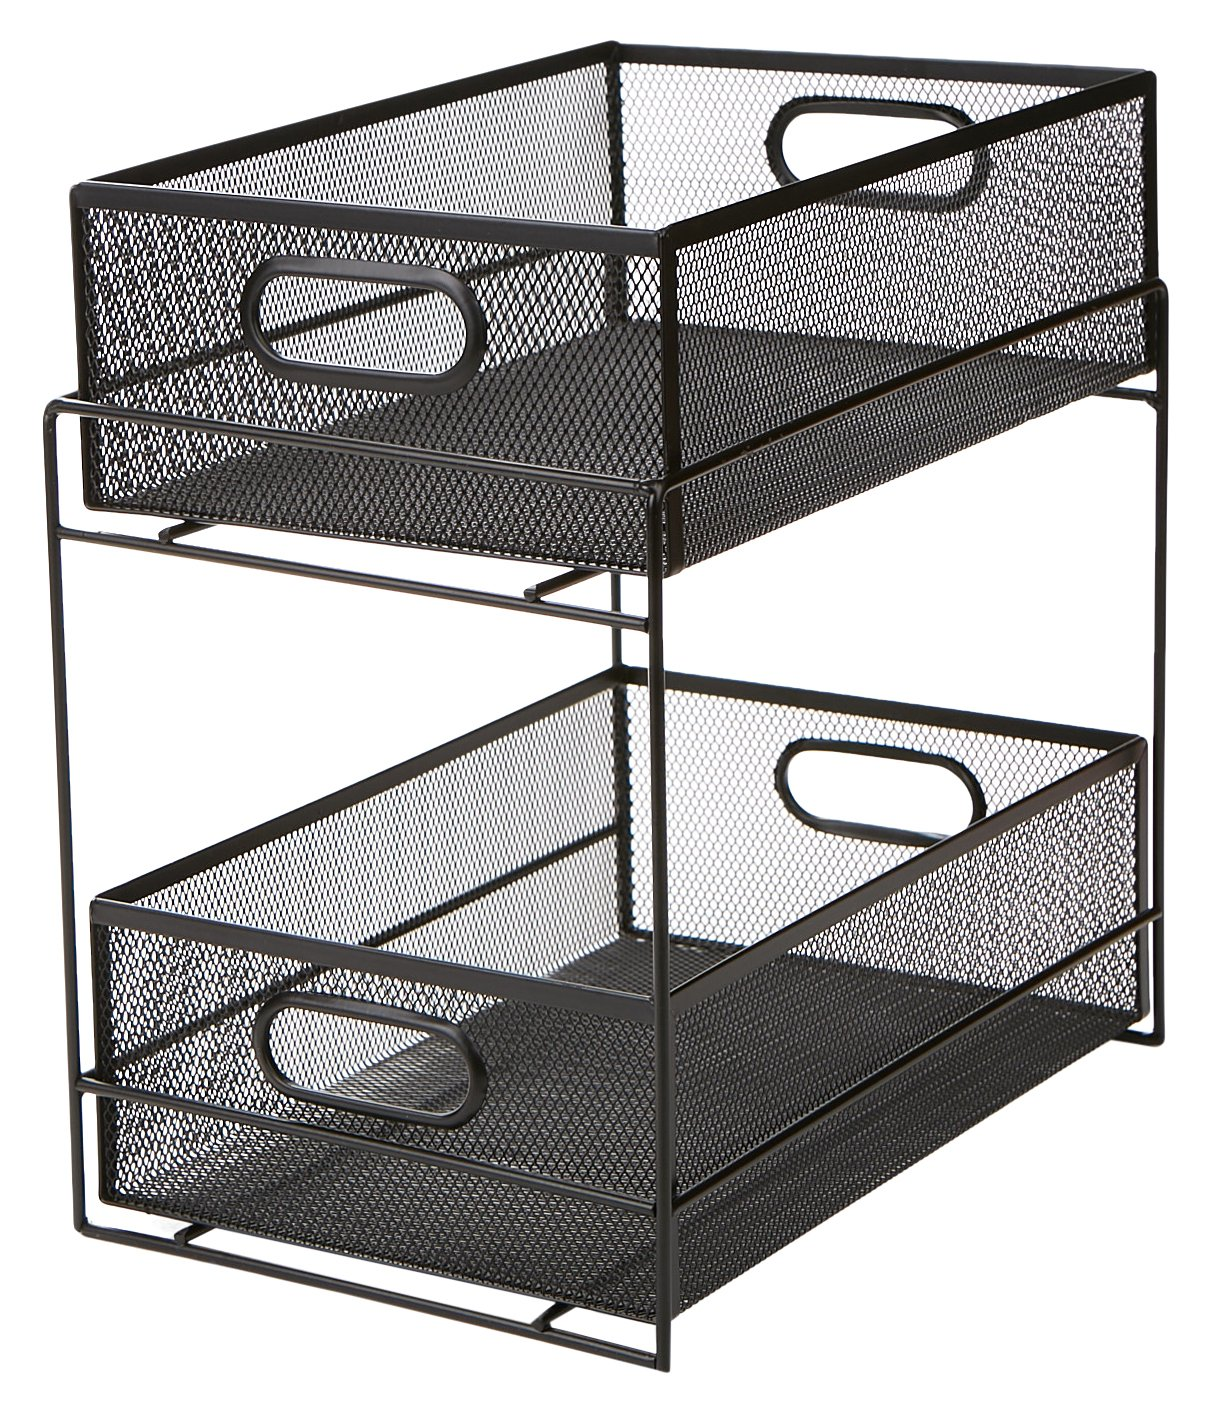 Mind Reader 2 Tier Metal Mesh Storage Baskets Organizer, Home, Office, Kitchen, Bathroom, Black